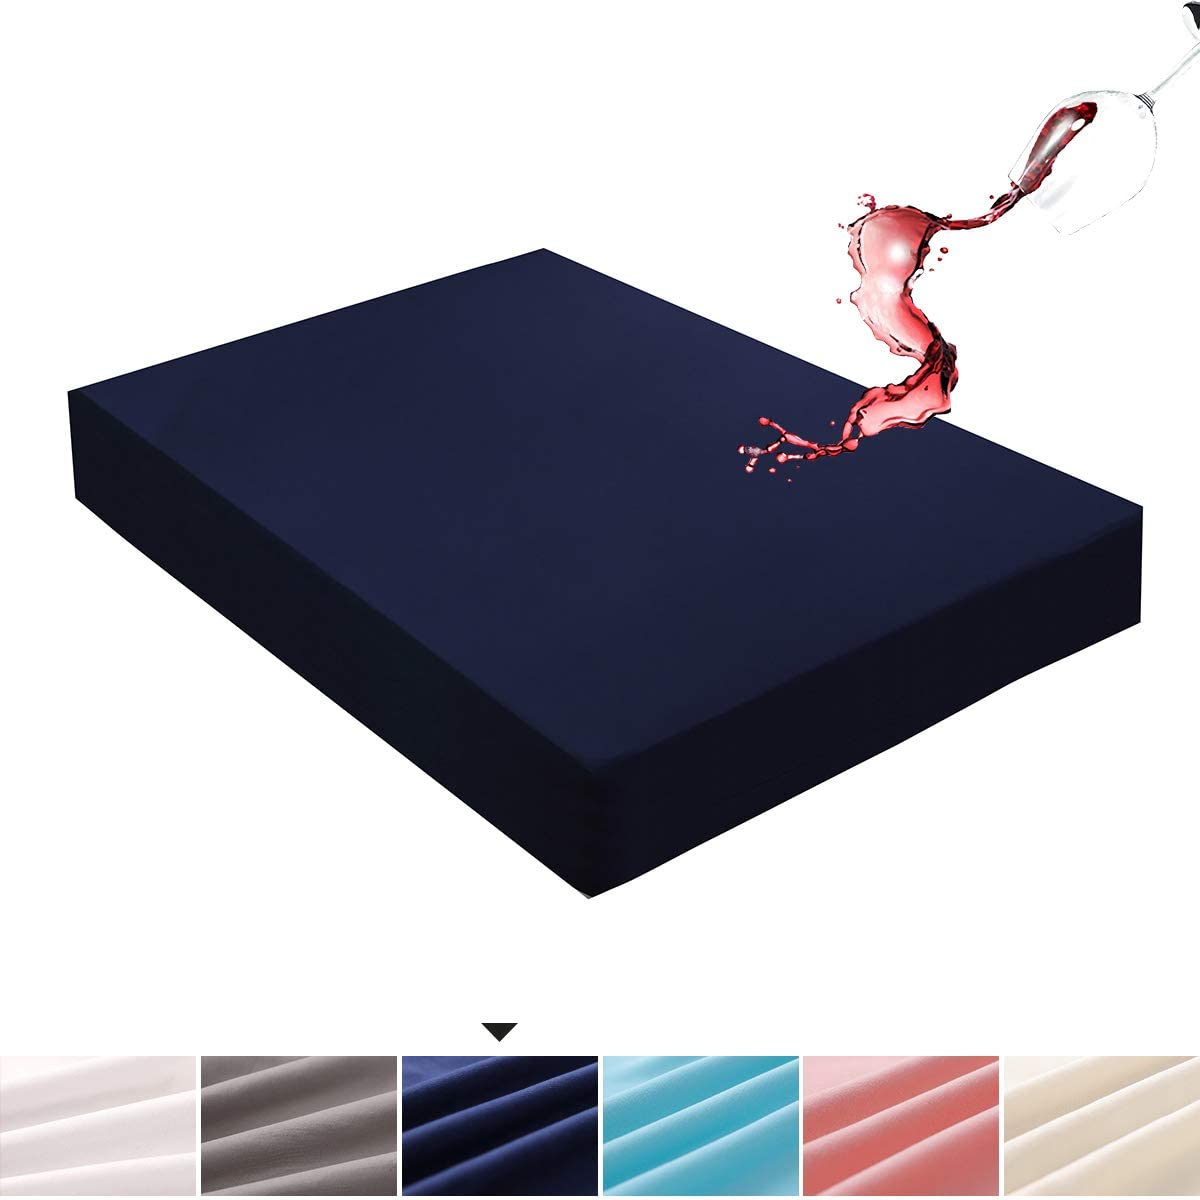 Mecerock Navy King Size Waterproof Mattress Pad Protector Cover Fitted to 18